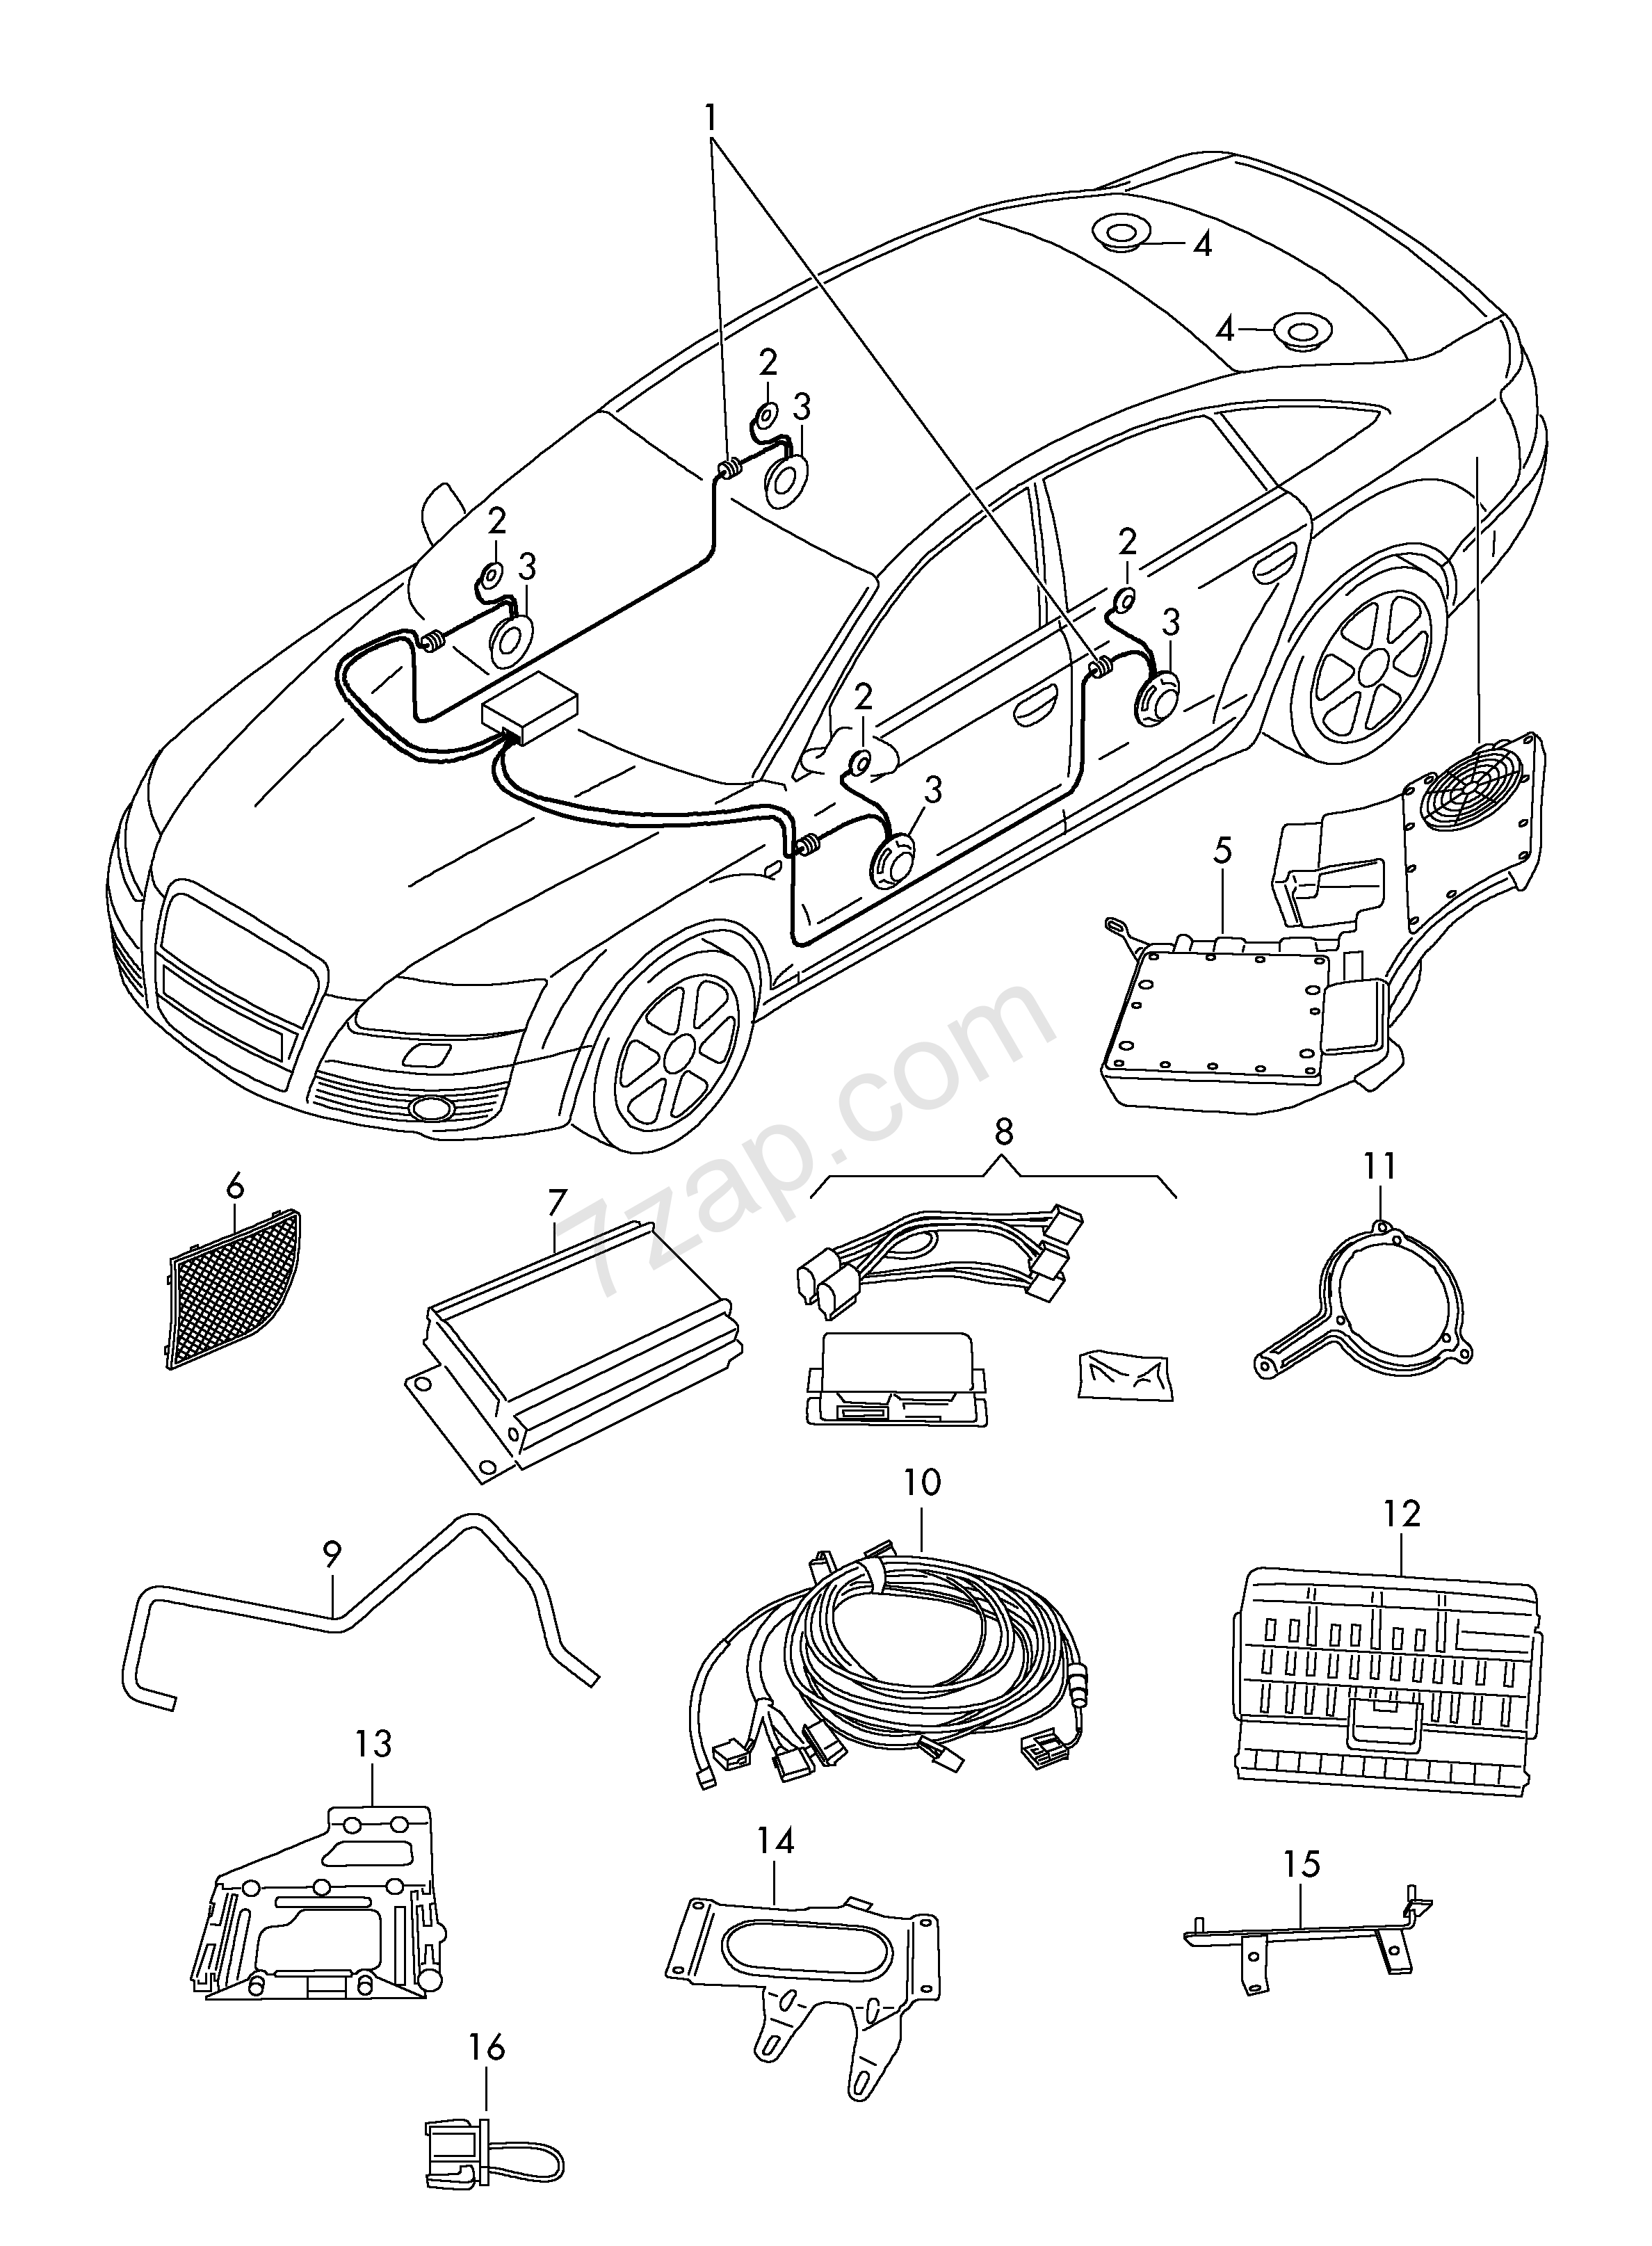 156063100 automotive wiring color codes wiring diagram,4 Line Phone Wiring Color Code